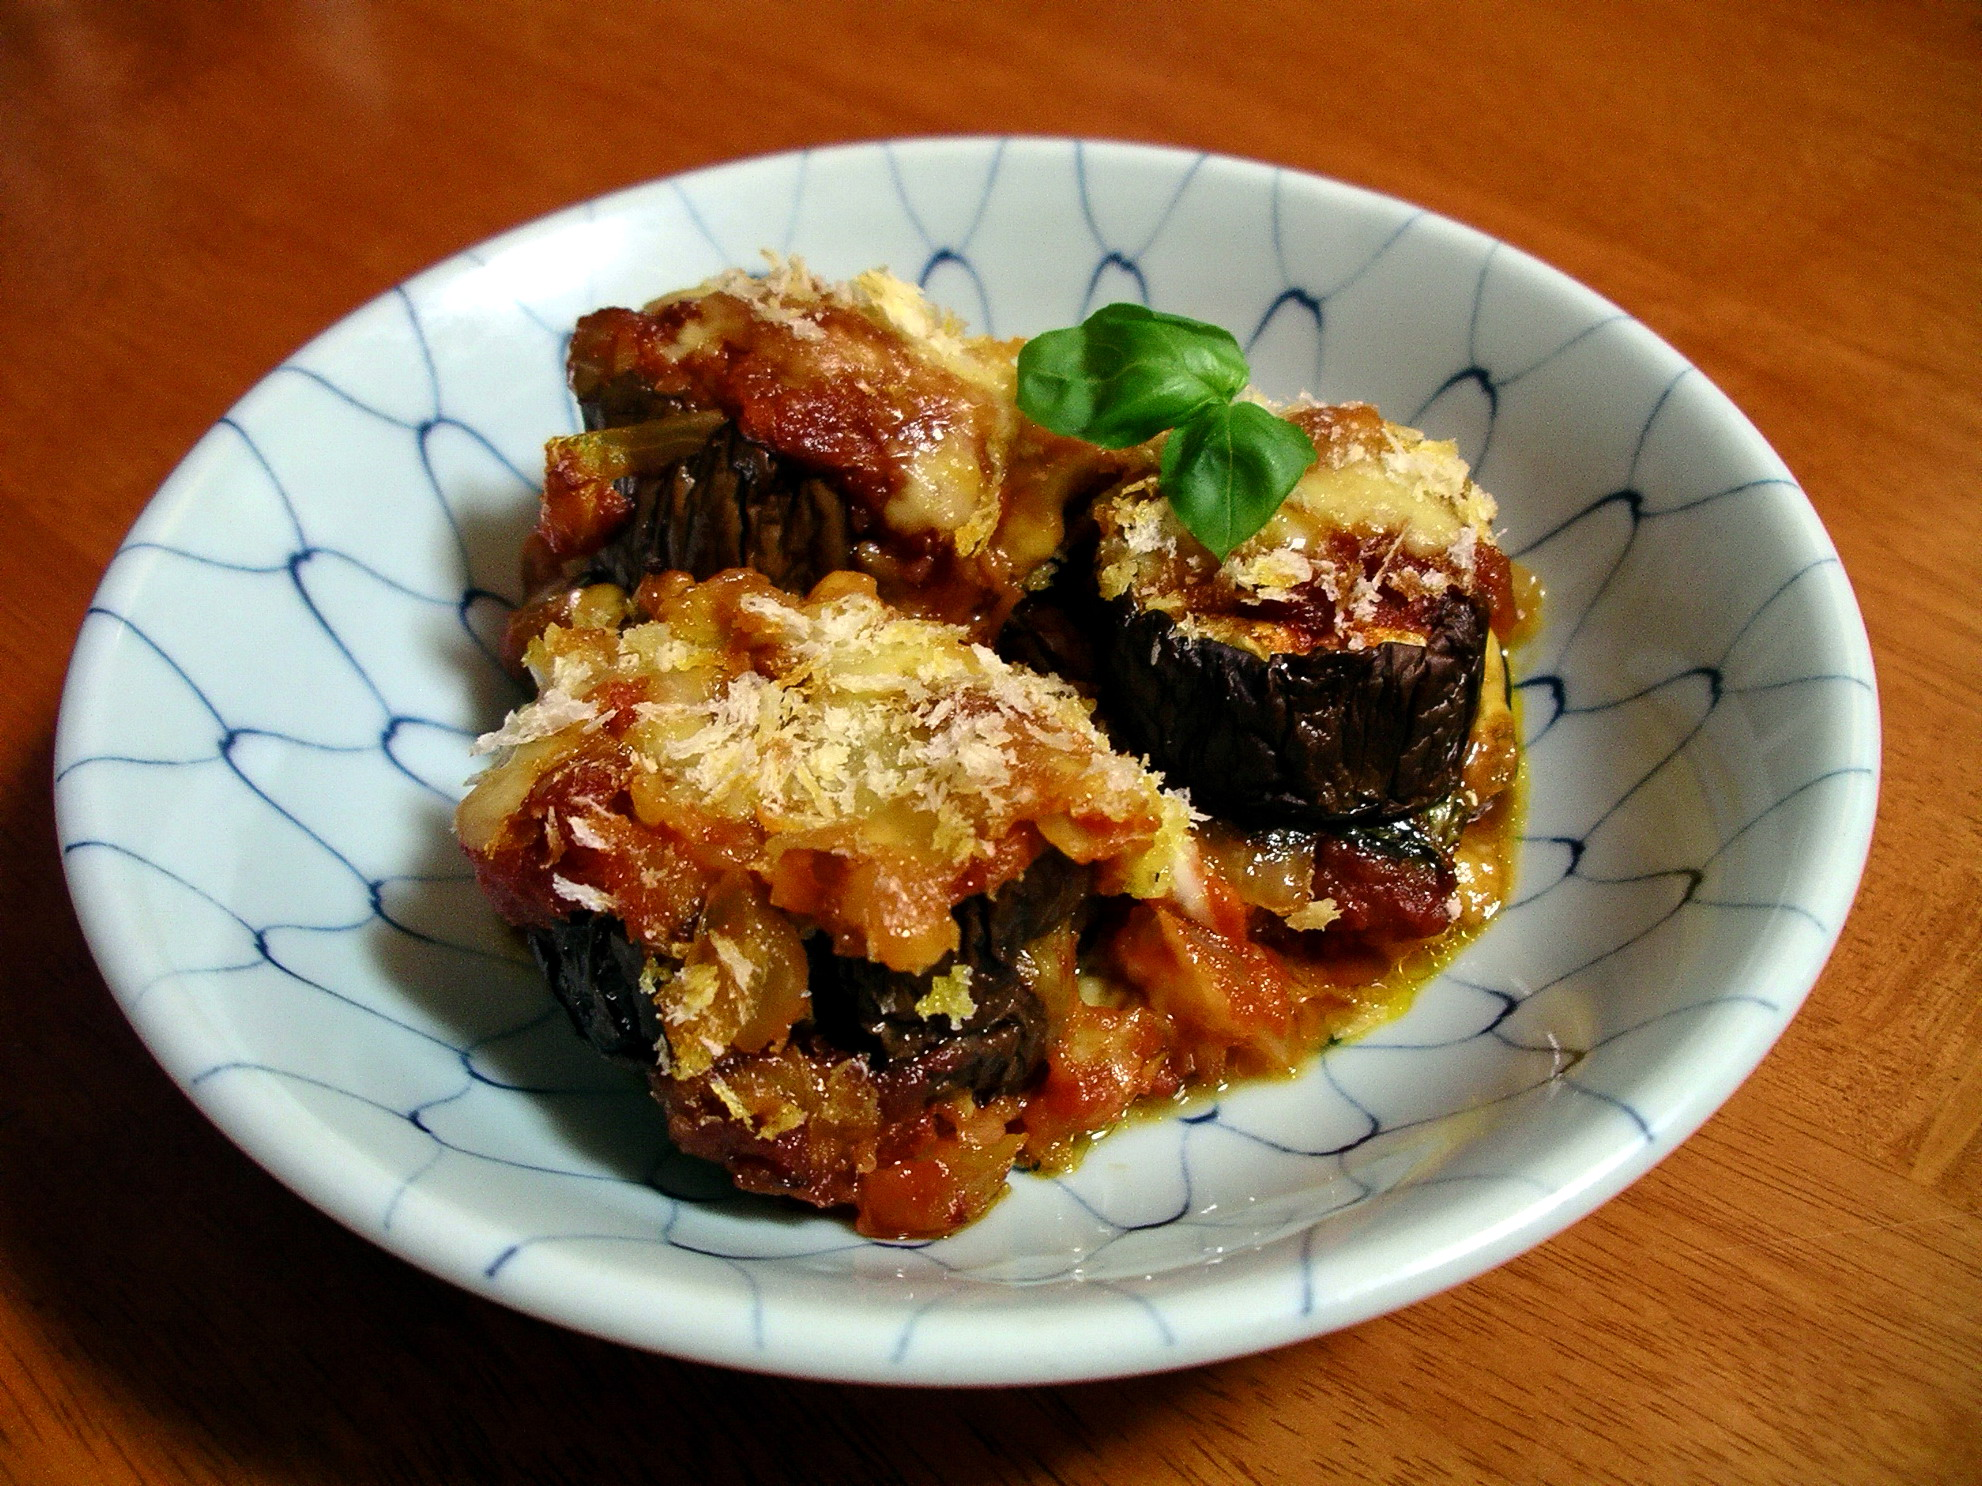 File:Melanzane alla Parmigiana.jpg - Wikipedia, the free encyclopedia